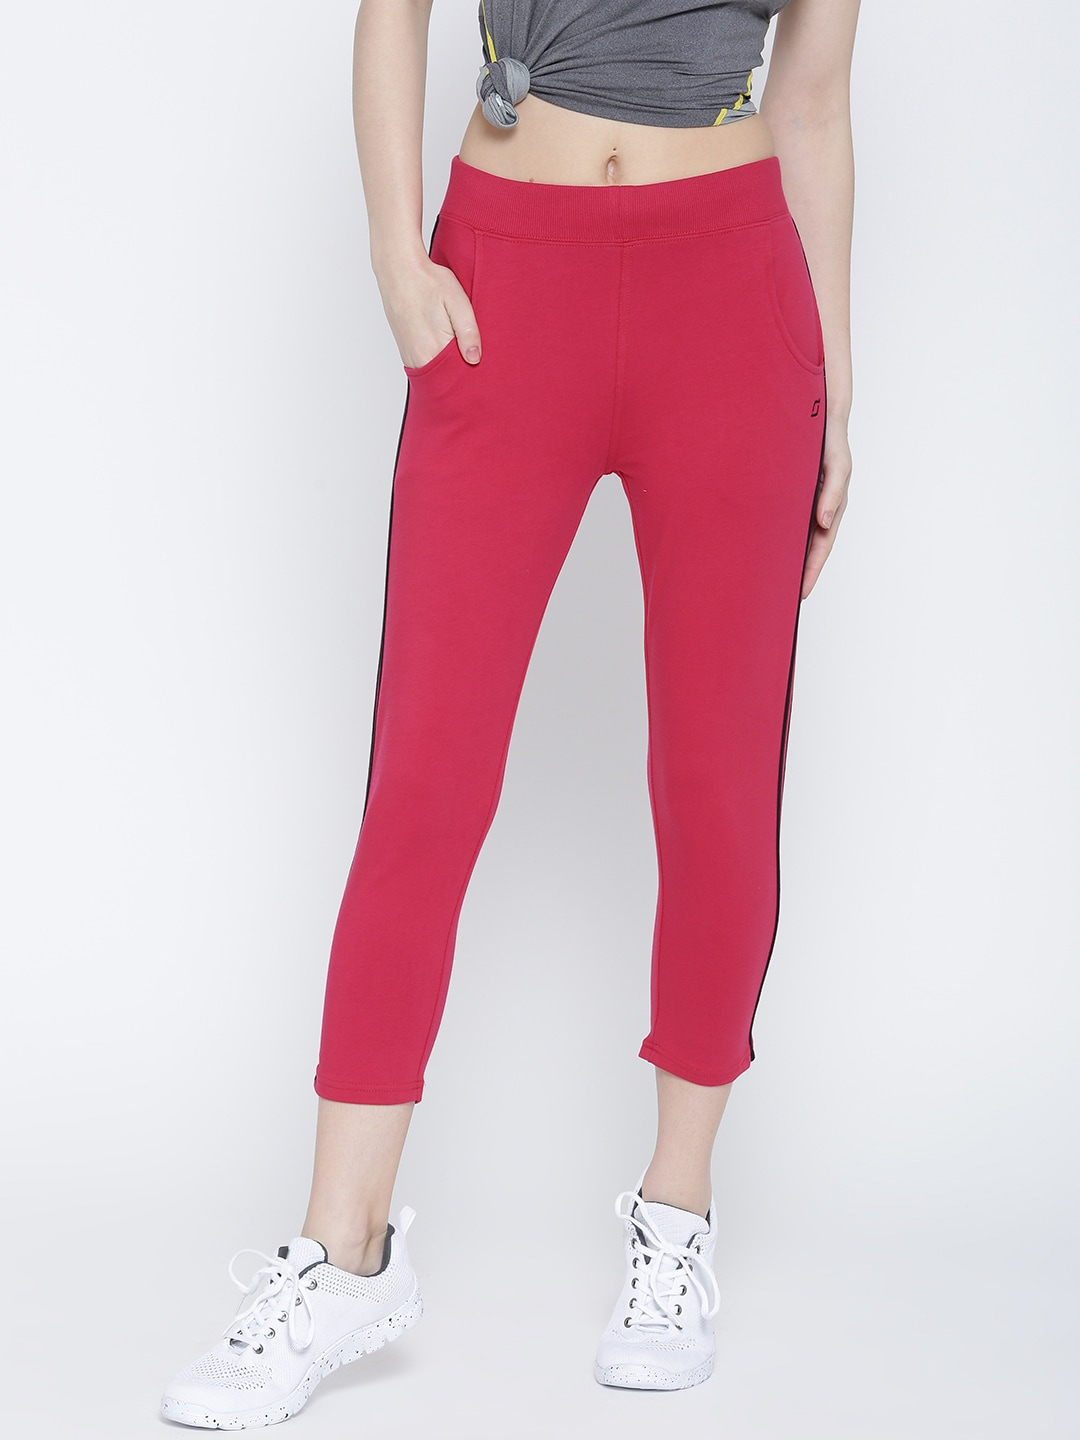 SDL by Sweet Dreams Pink Active Capris image